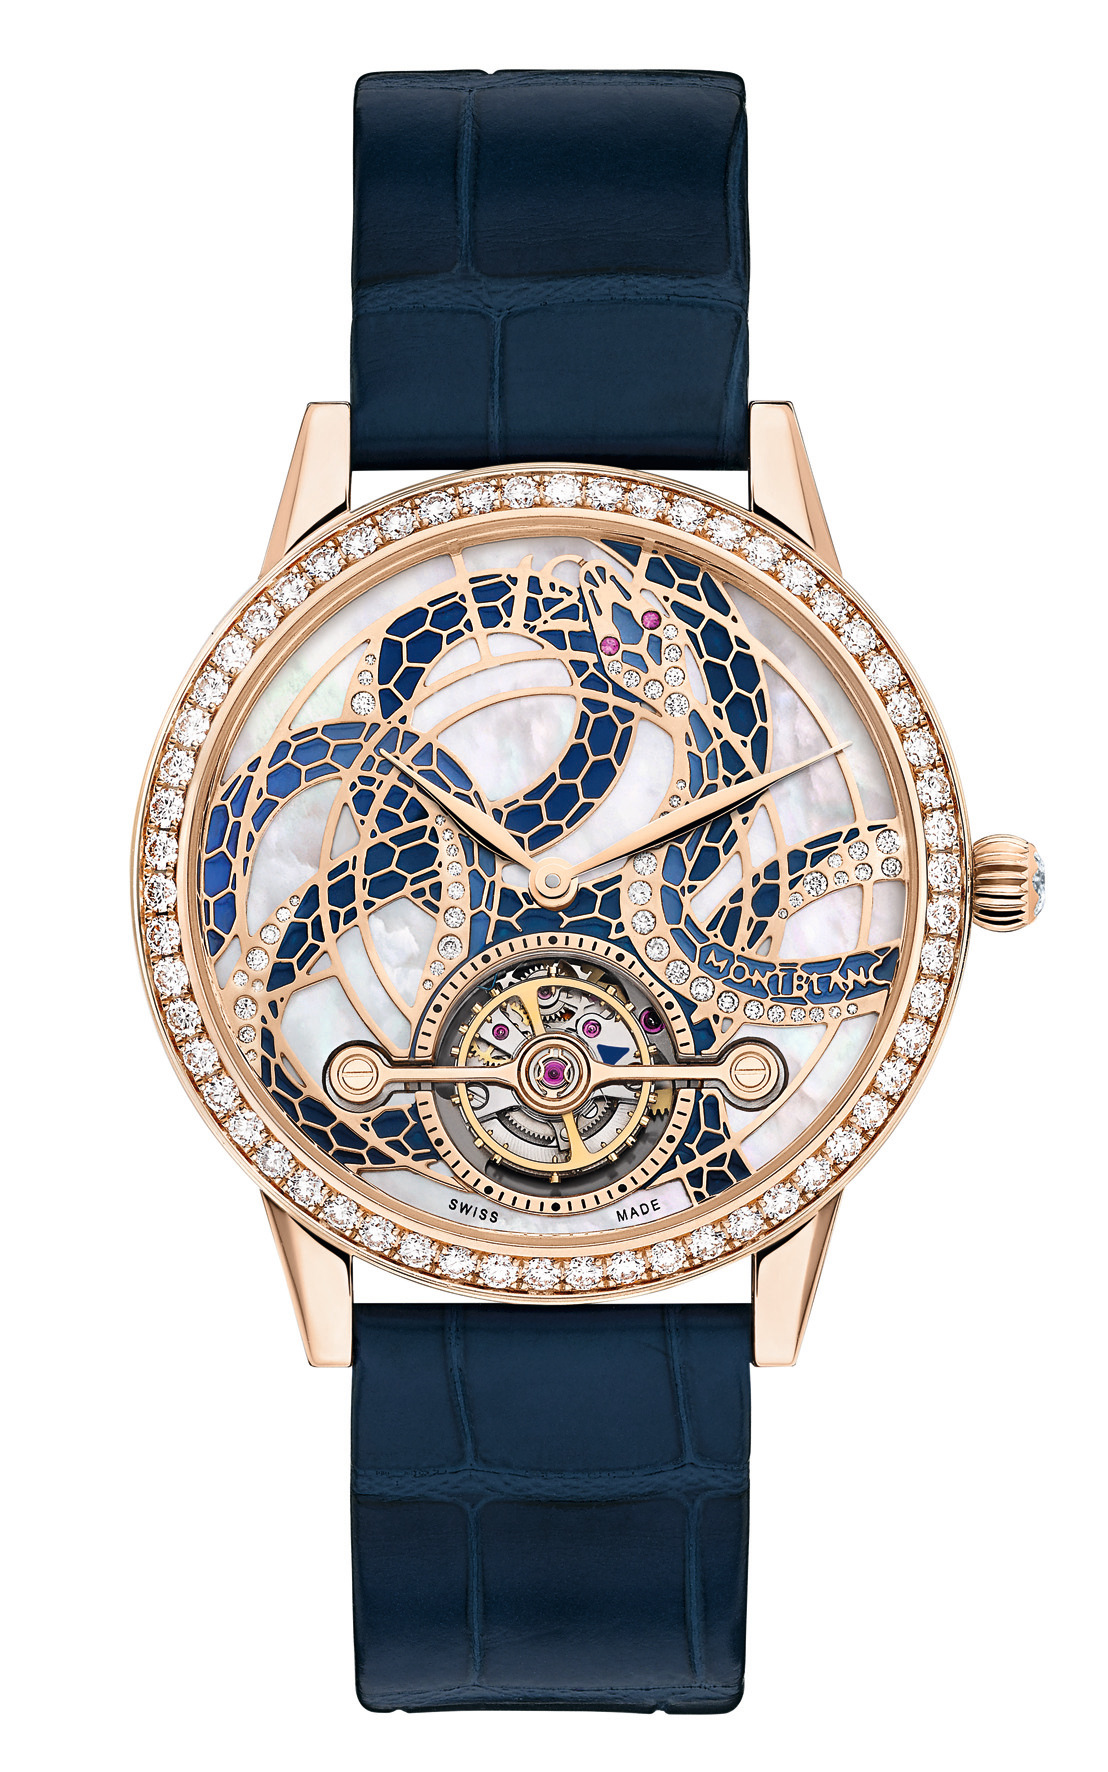 Trending: Horological masterpieces for ladies and gents, some very satisfying steak and a fragrance bottle to collect